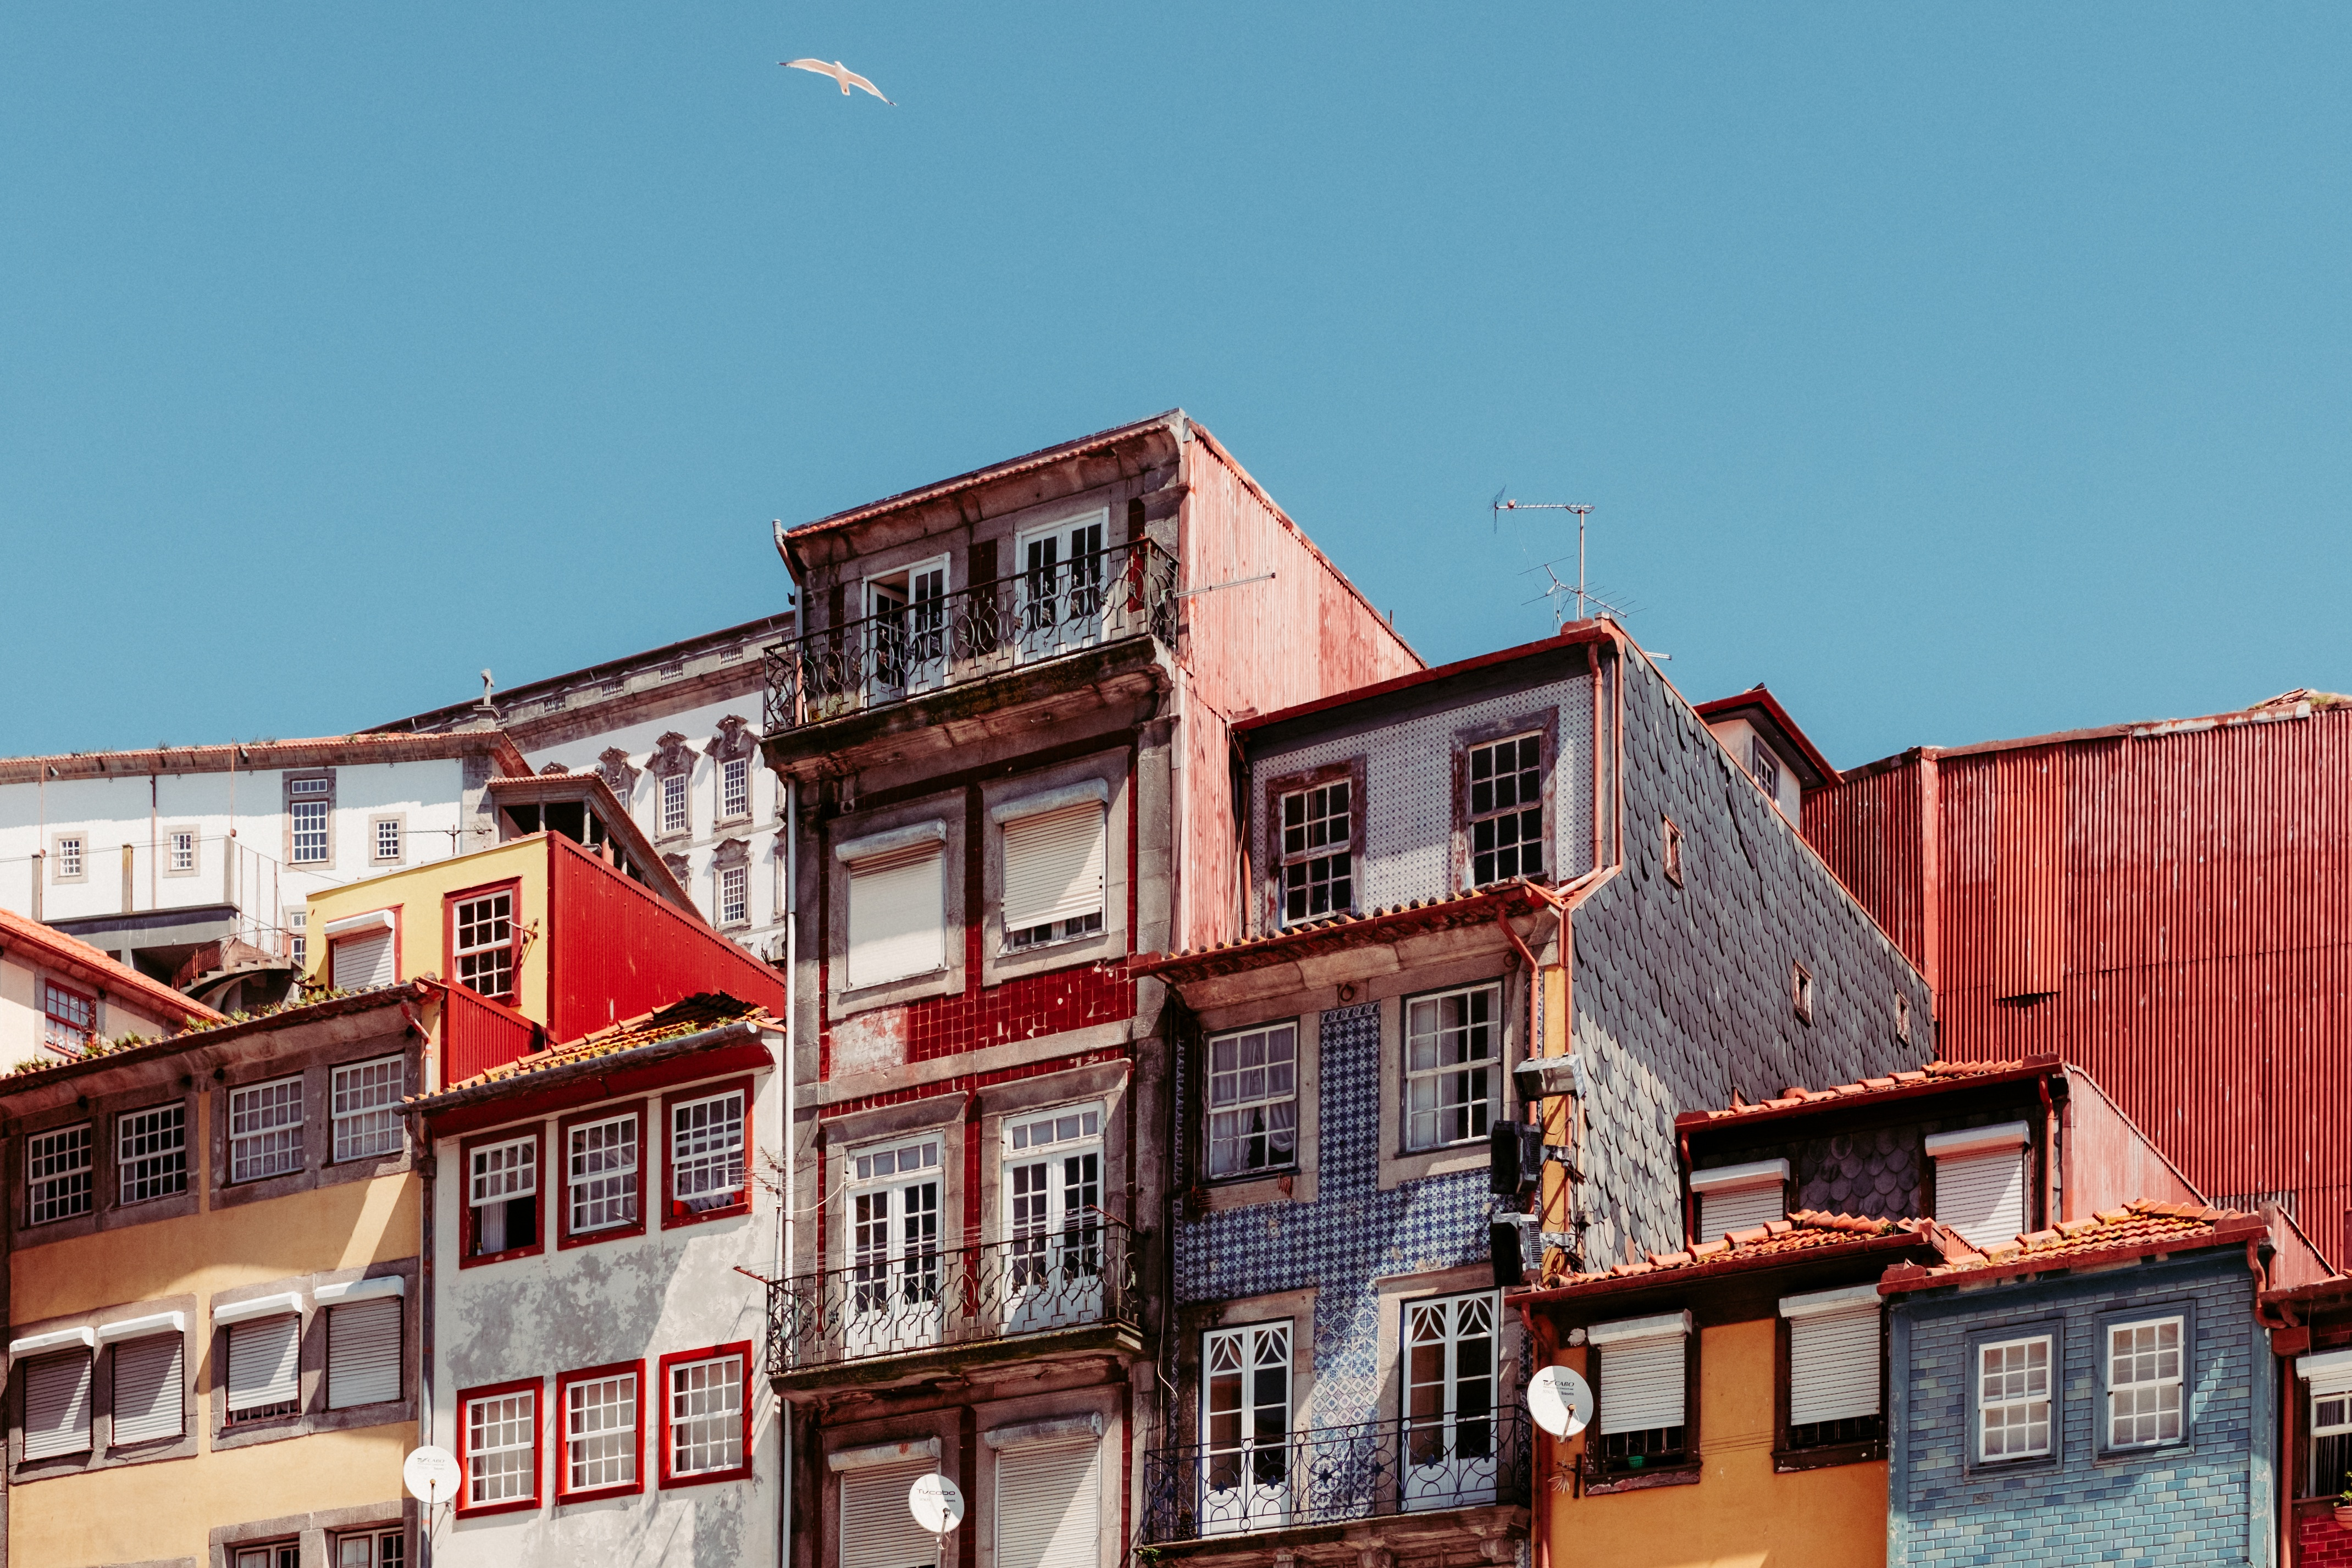 Houses and buildings in porto portugal image free stock for House structures pictures